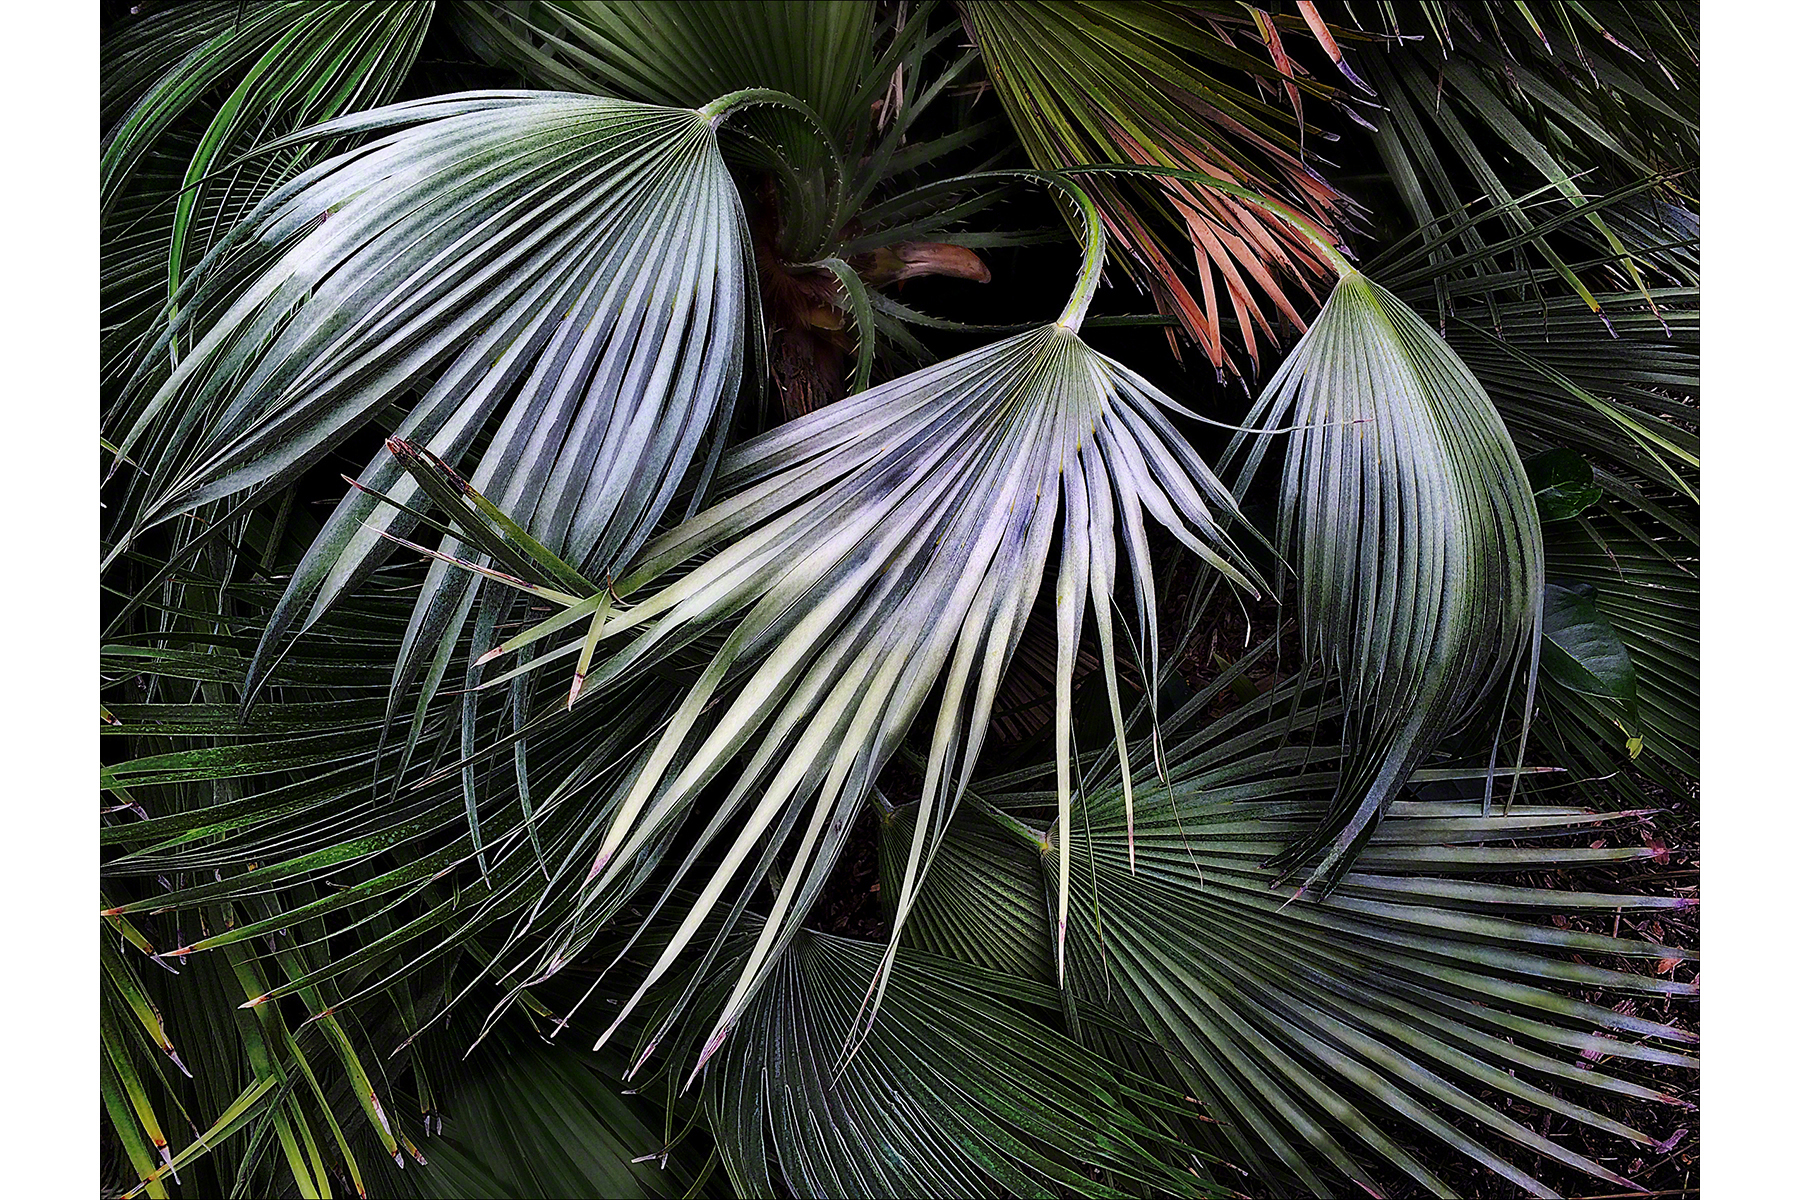 Silver Fronds